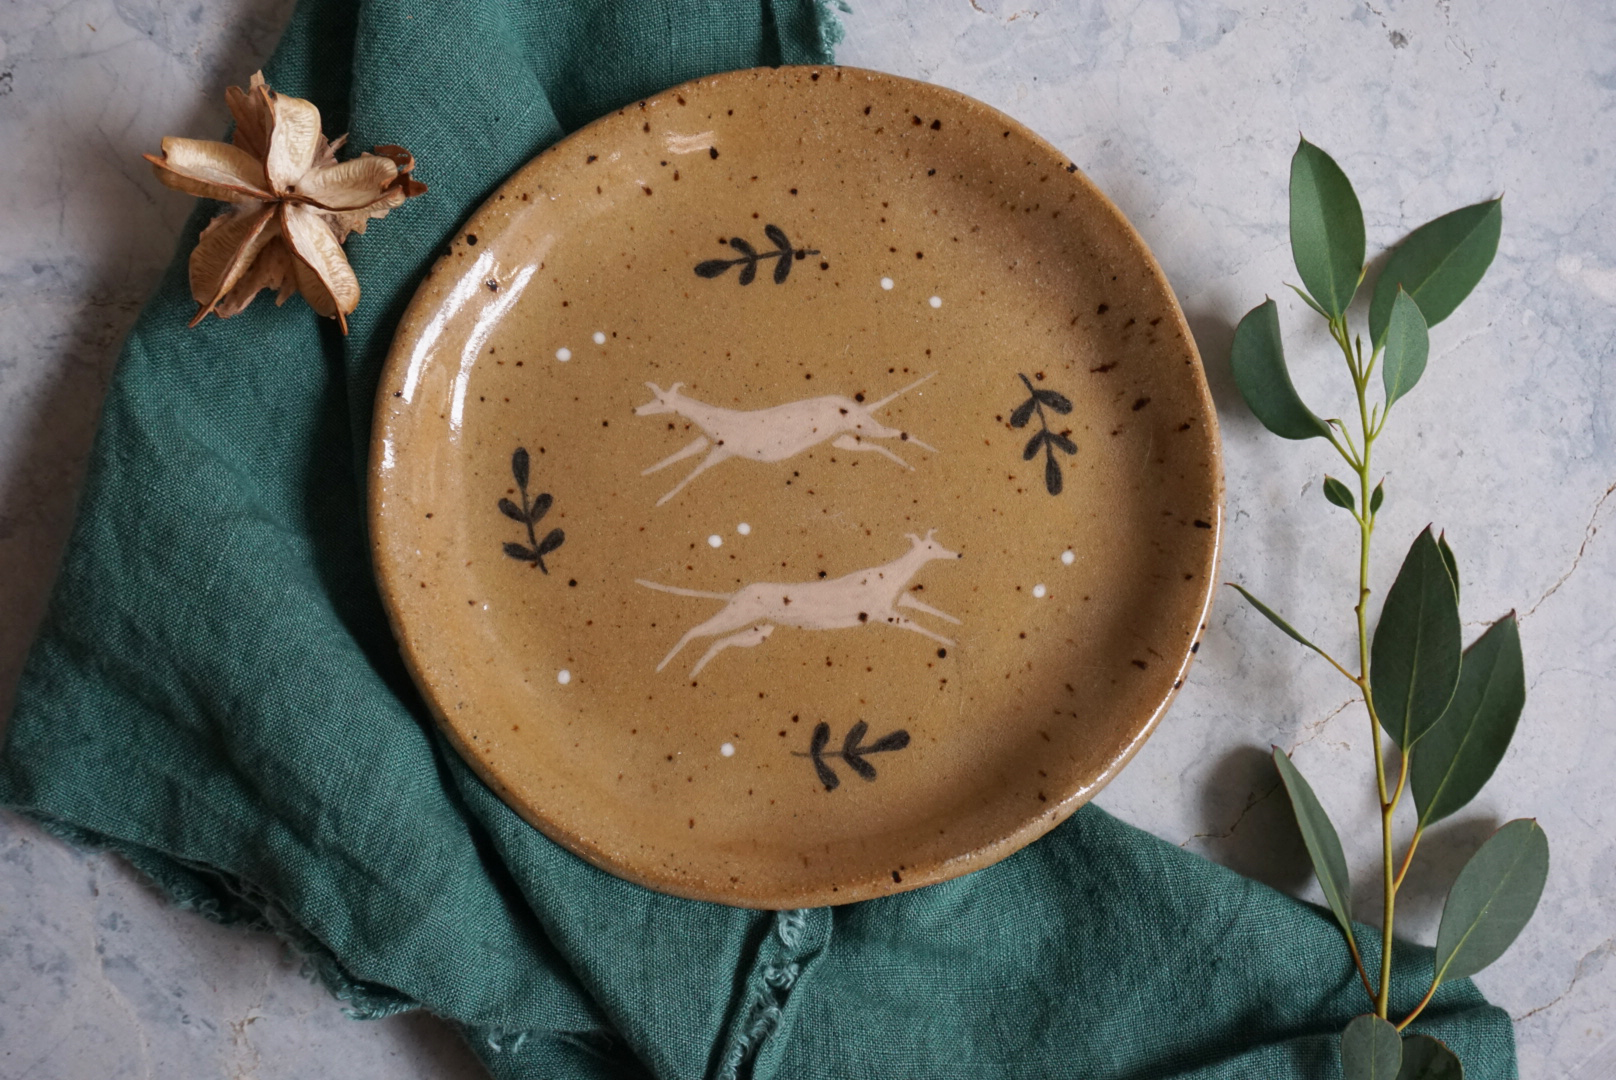 A ceramic plate with an illustration of two greyhounds and leaves